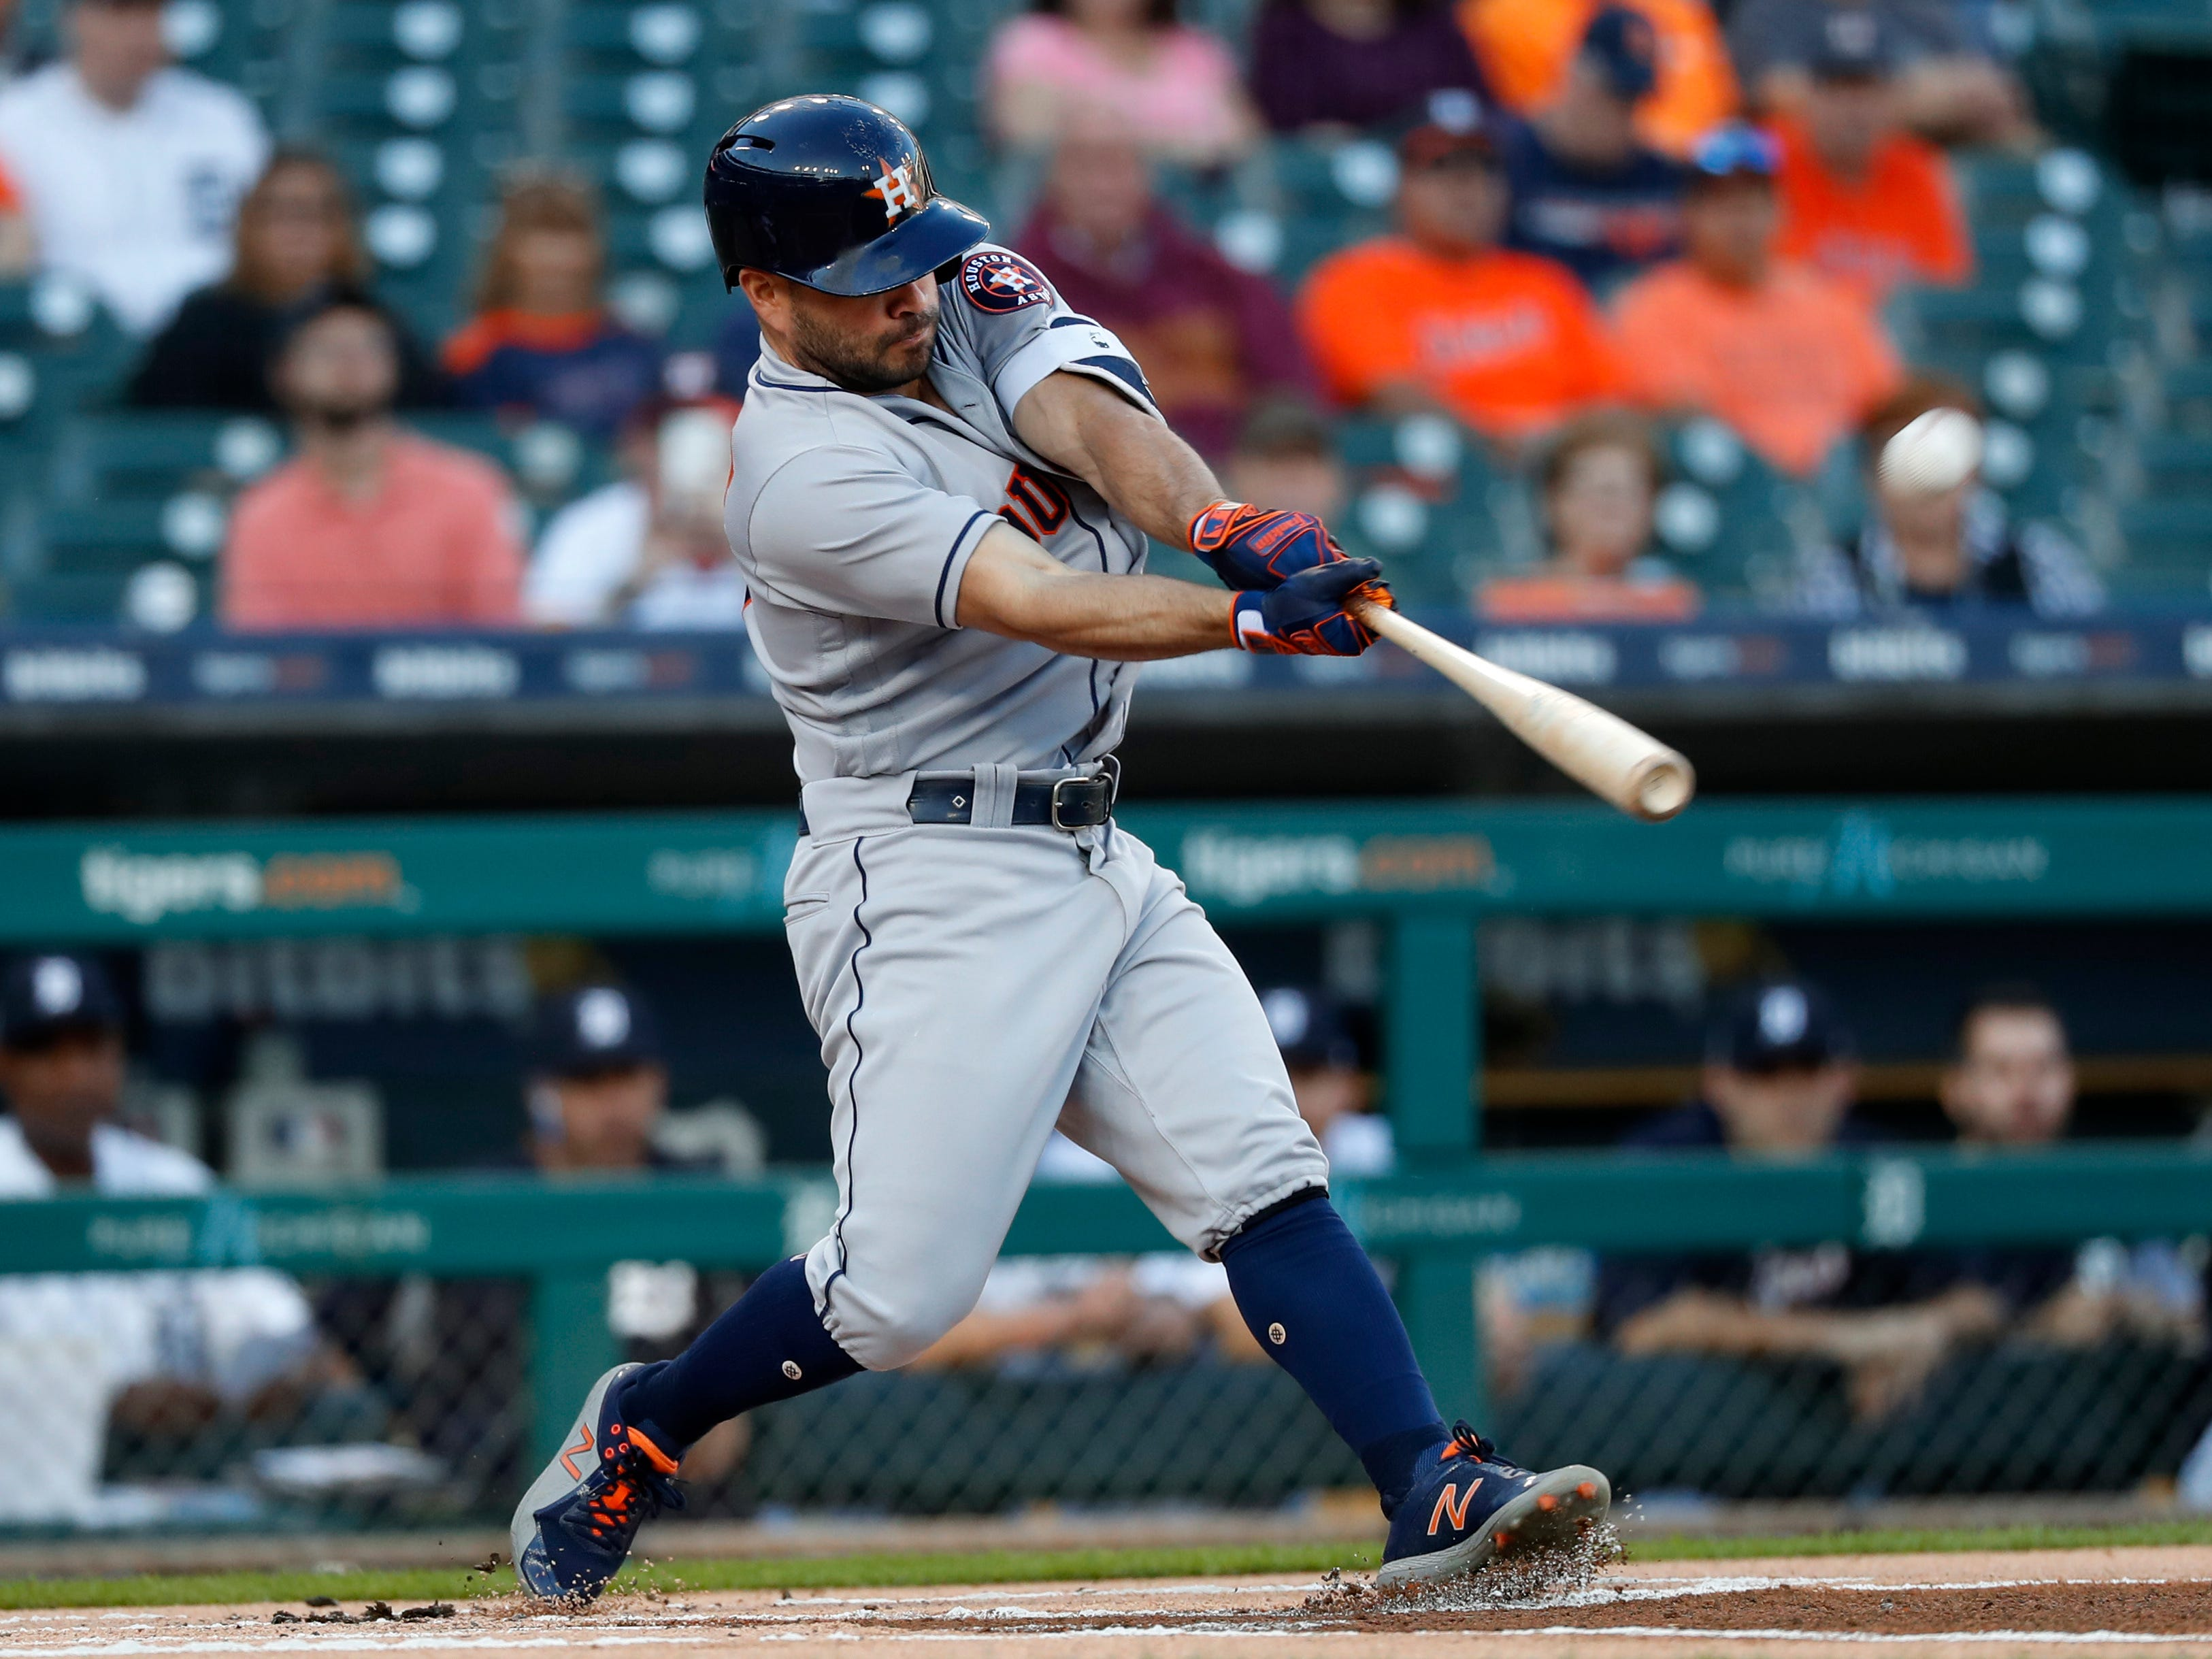 Houston Astros' Jose Altuve hits a leadoff solo home run against the Detroit Tigers in the first inning.